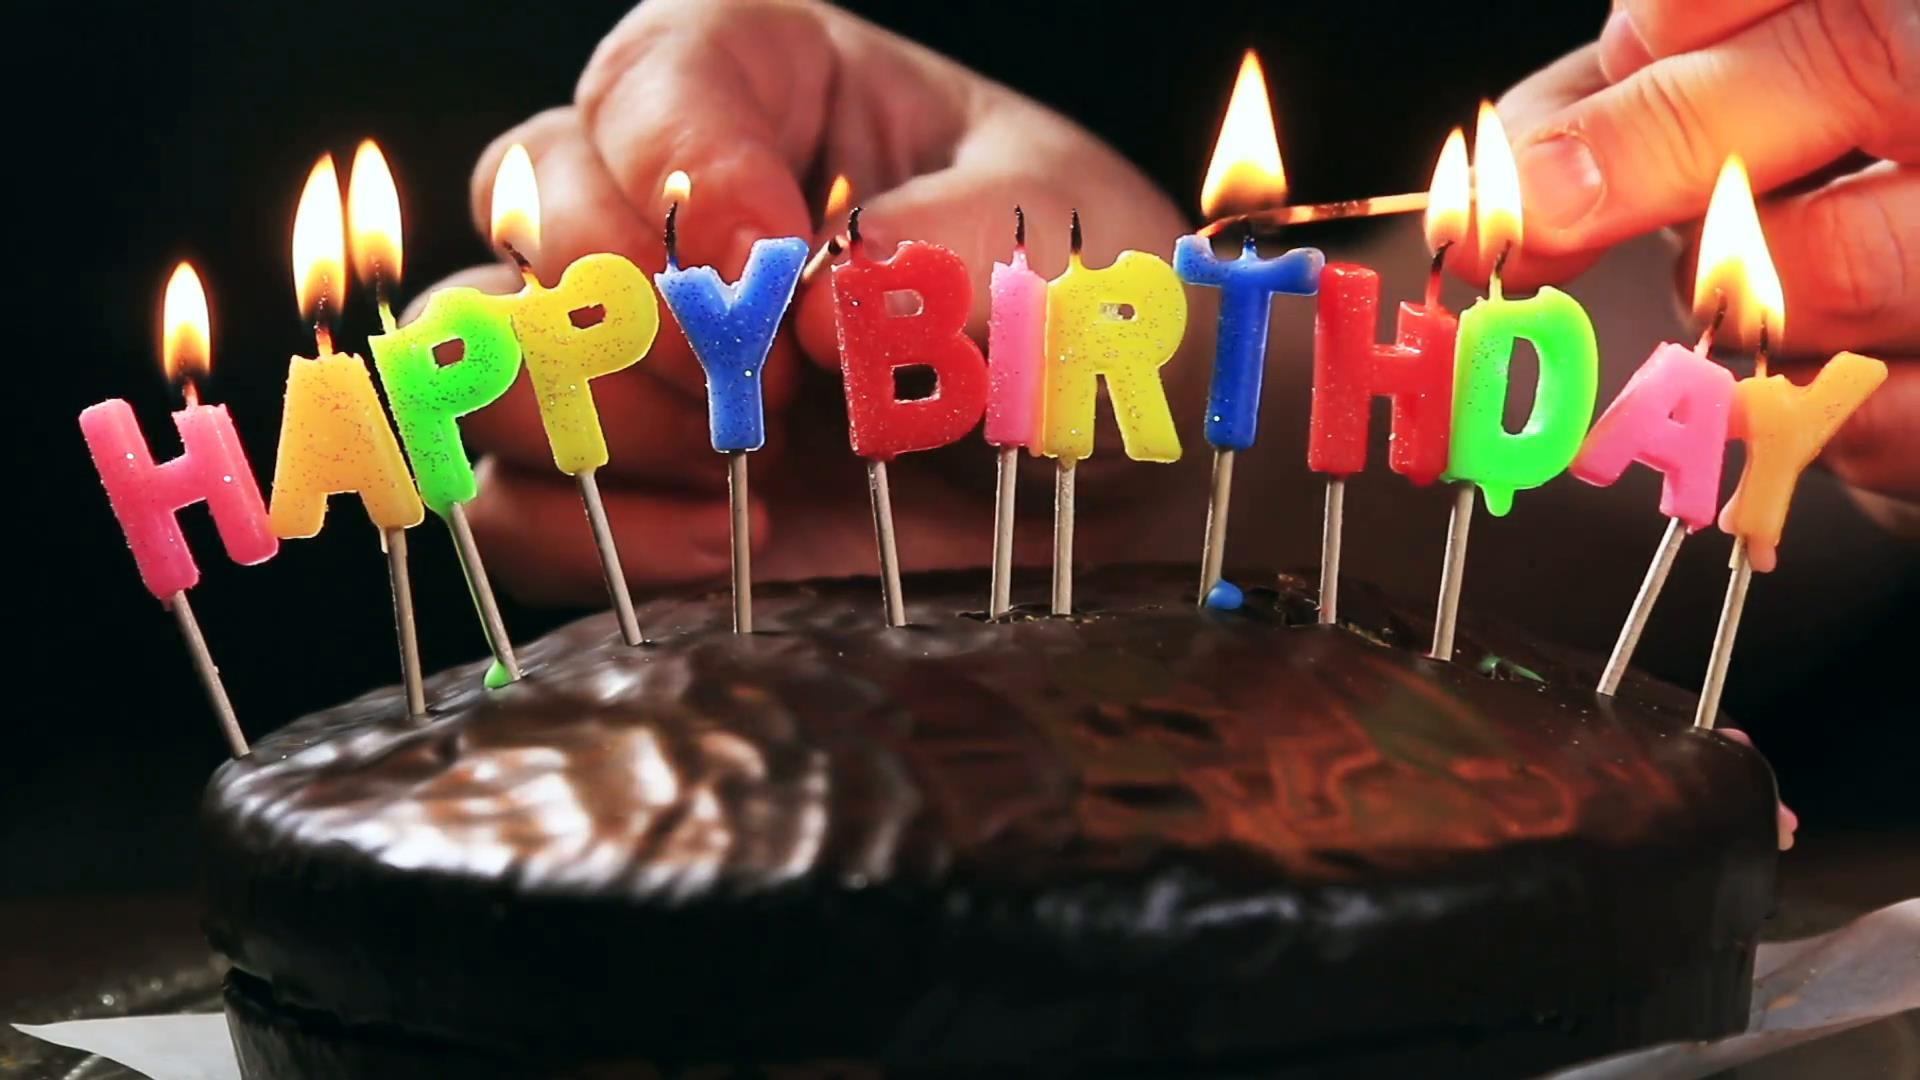 image of a birthday candle ; lighted-candles-on-a-happy-birthday-cake-candles-with-the-words-happy-birthday-on-a-chocolate-cake-hand-lights-a-candle-happy-birthday-time-lapse_rgfcpc0e__F0009